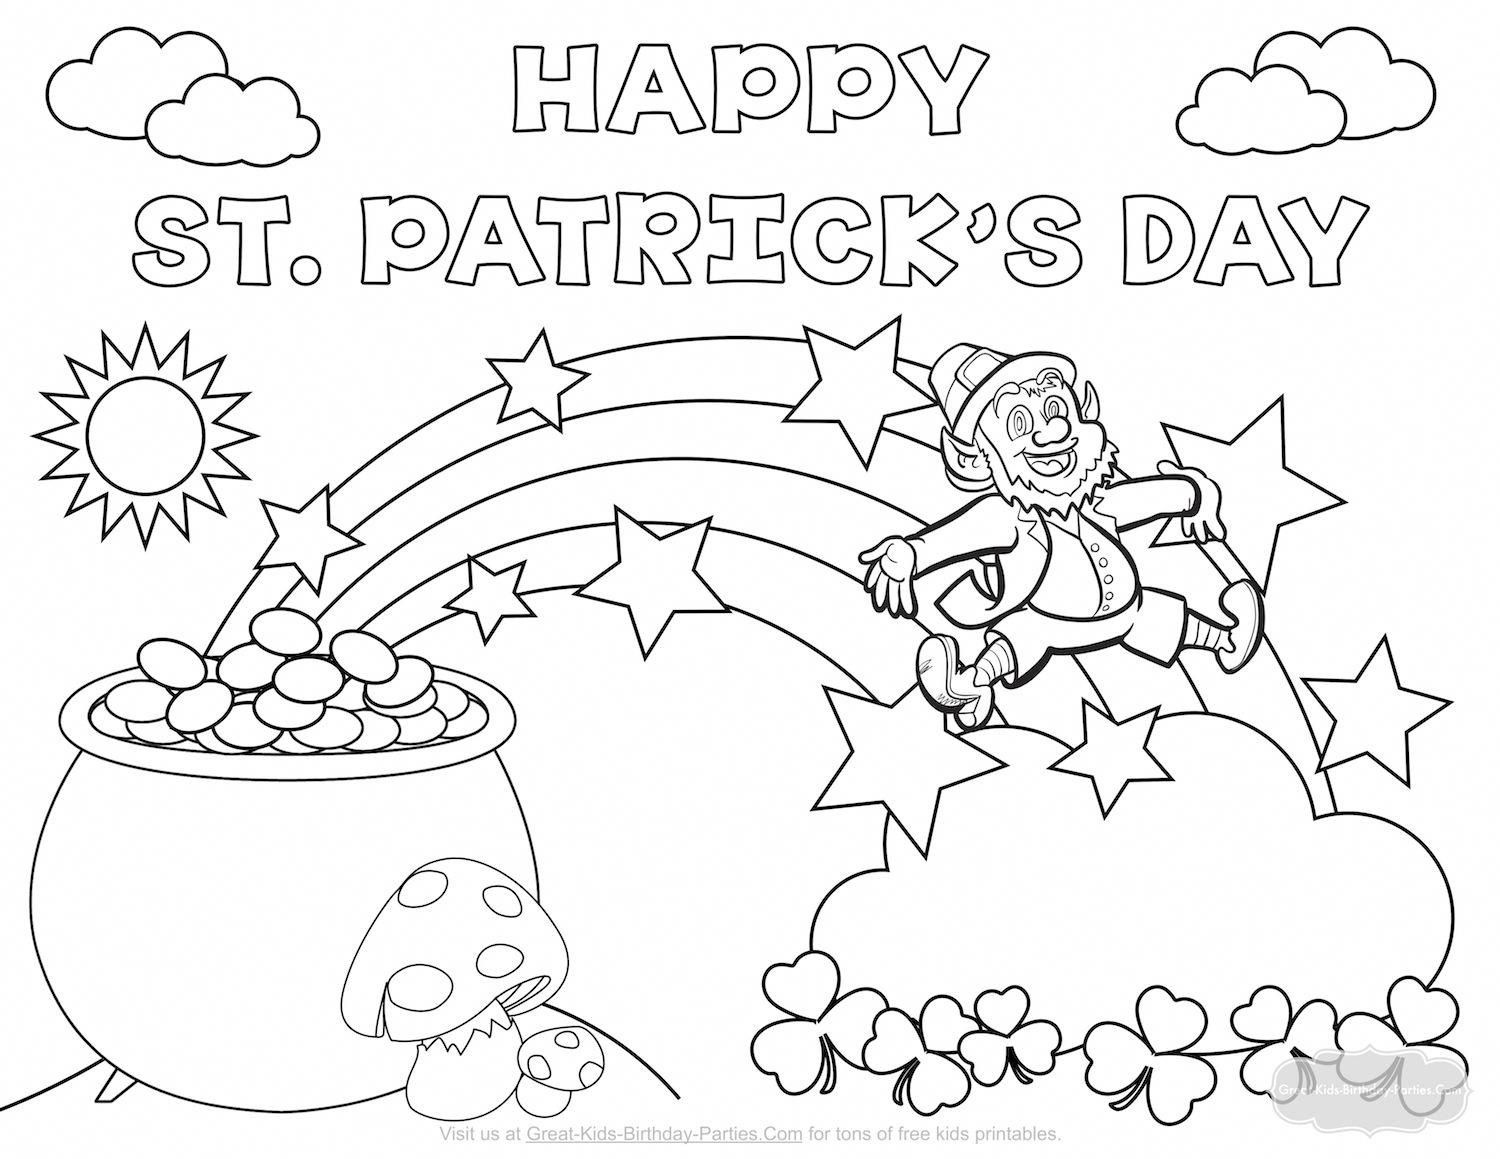 St. Patrick's Day Coloring Page #stpatricksdaycrafts | St.patricks - Free Printable St Patrick Day Coloring Pages